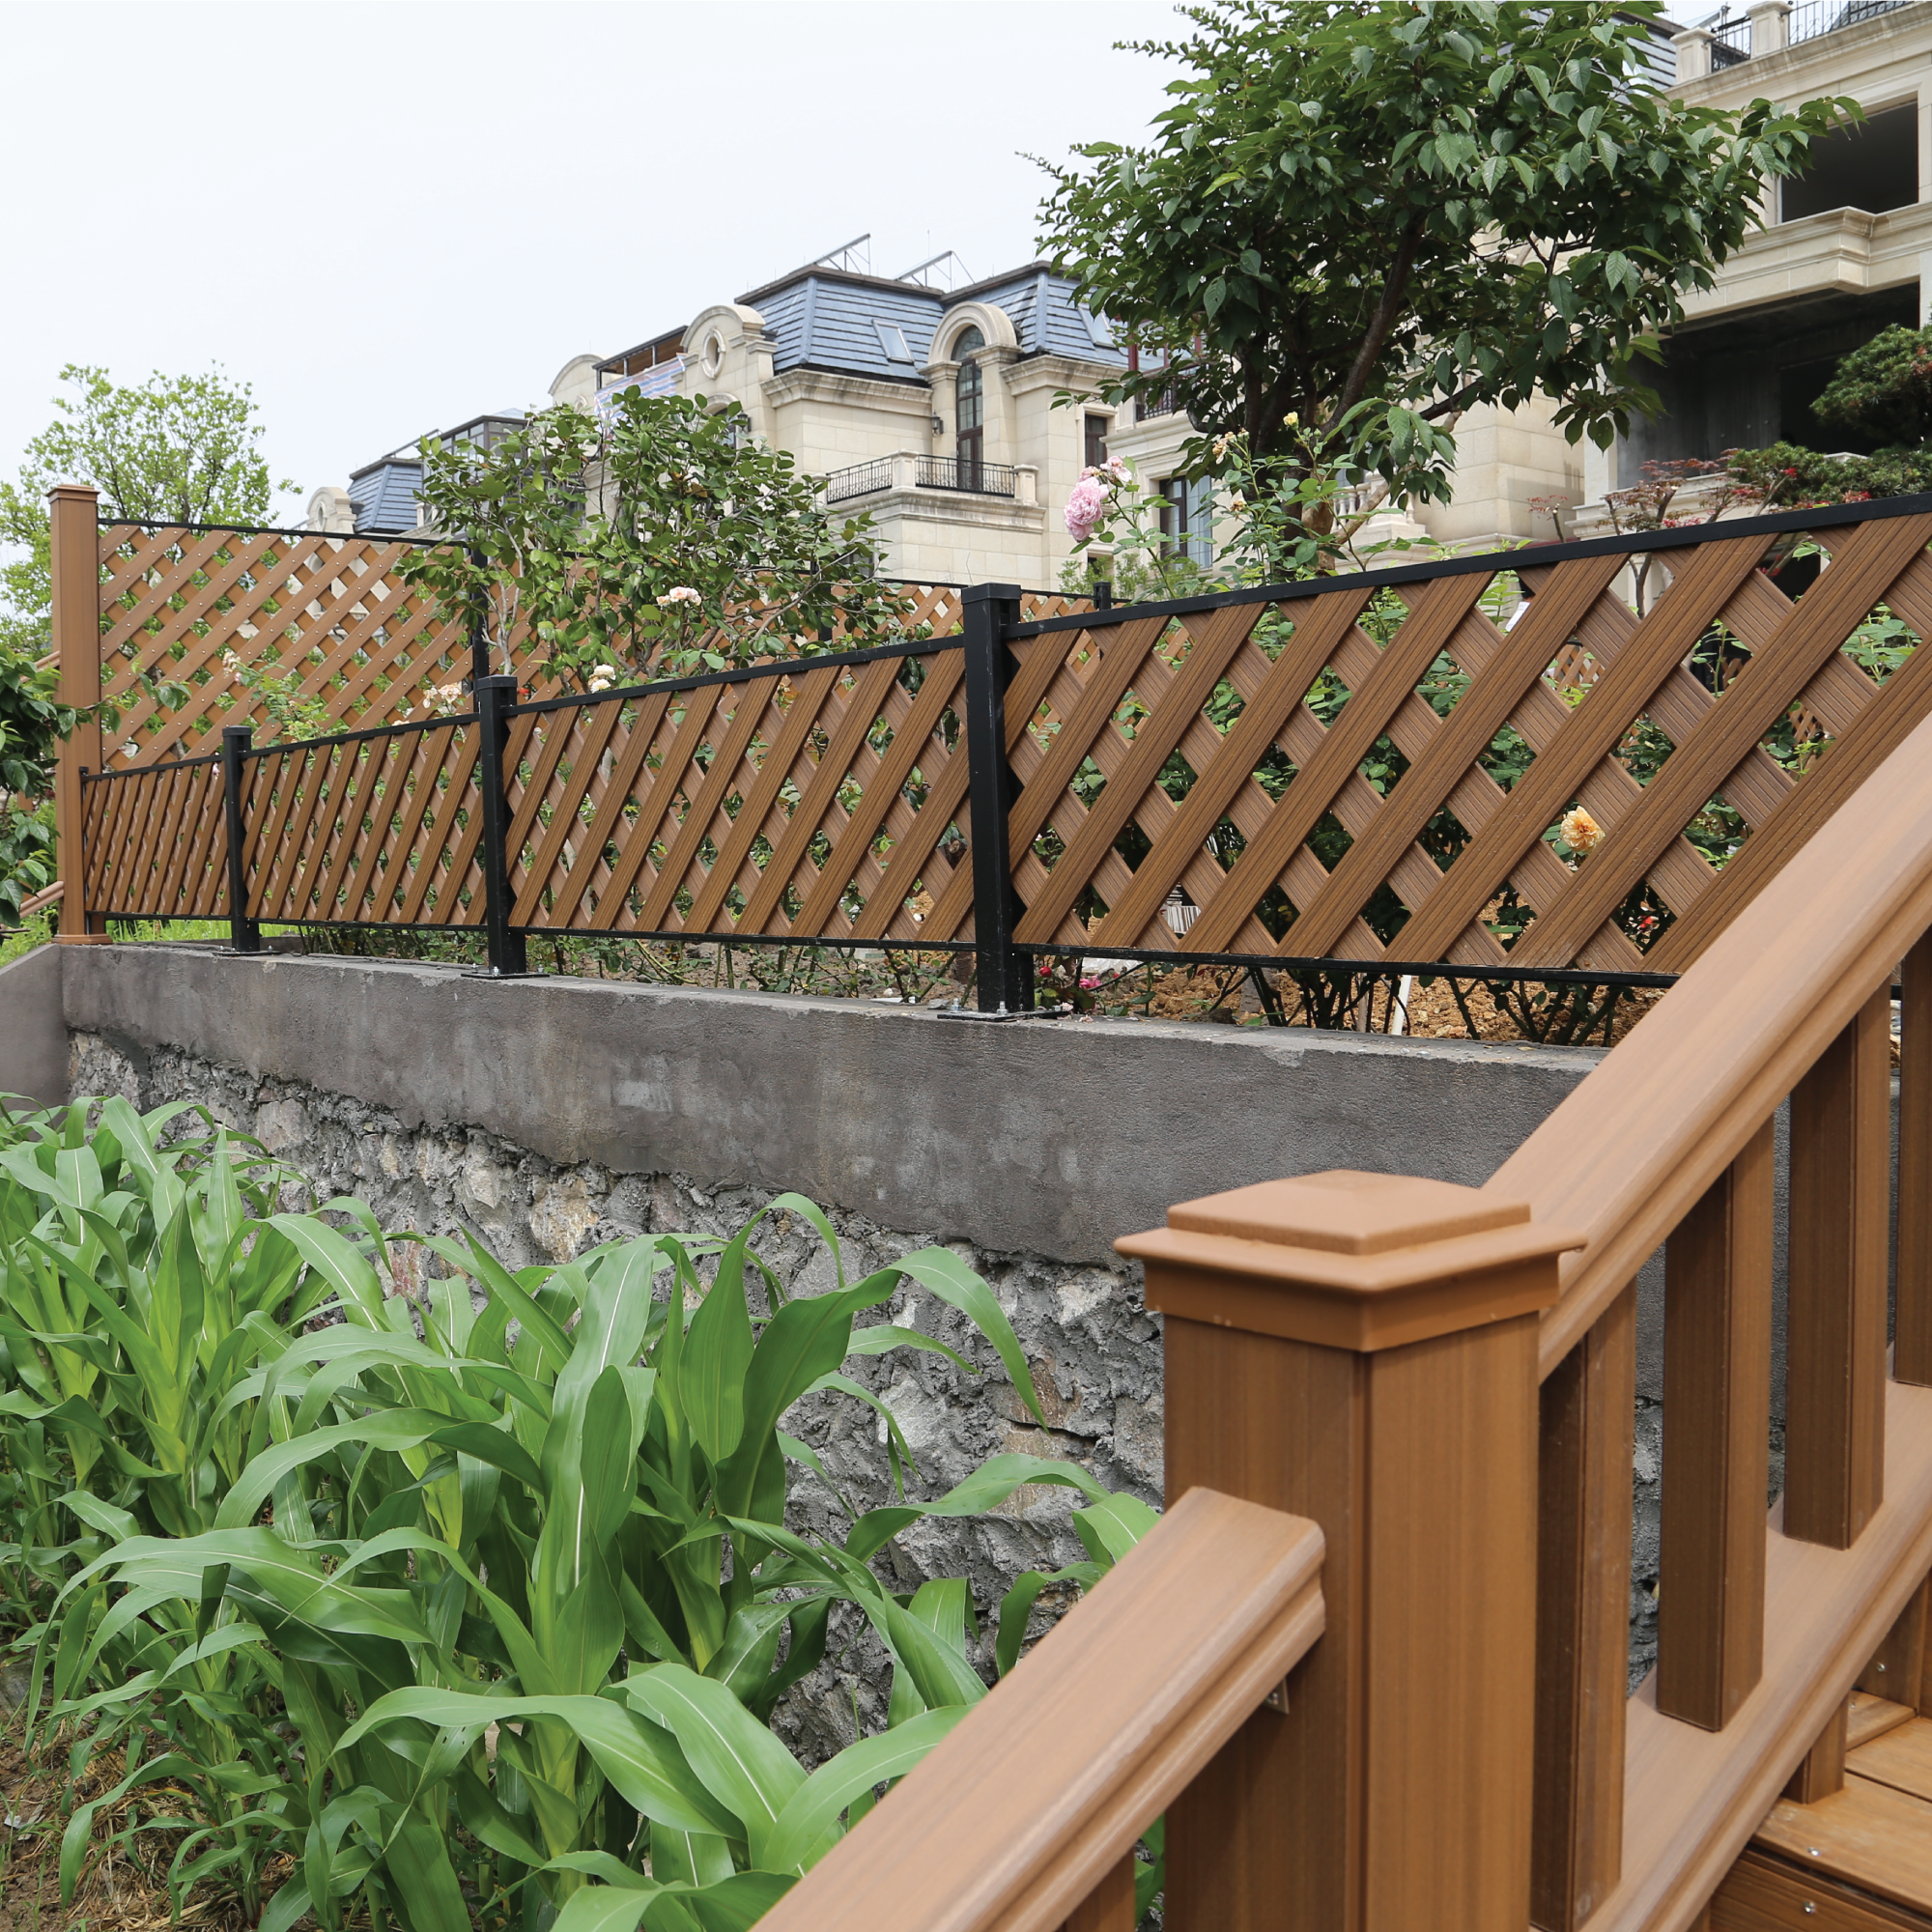 ....Heartwood Fencing..围栏..Heartwood Cercas.... -